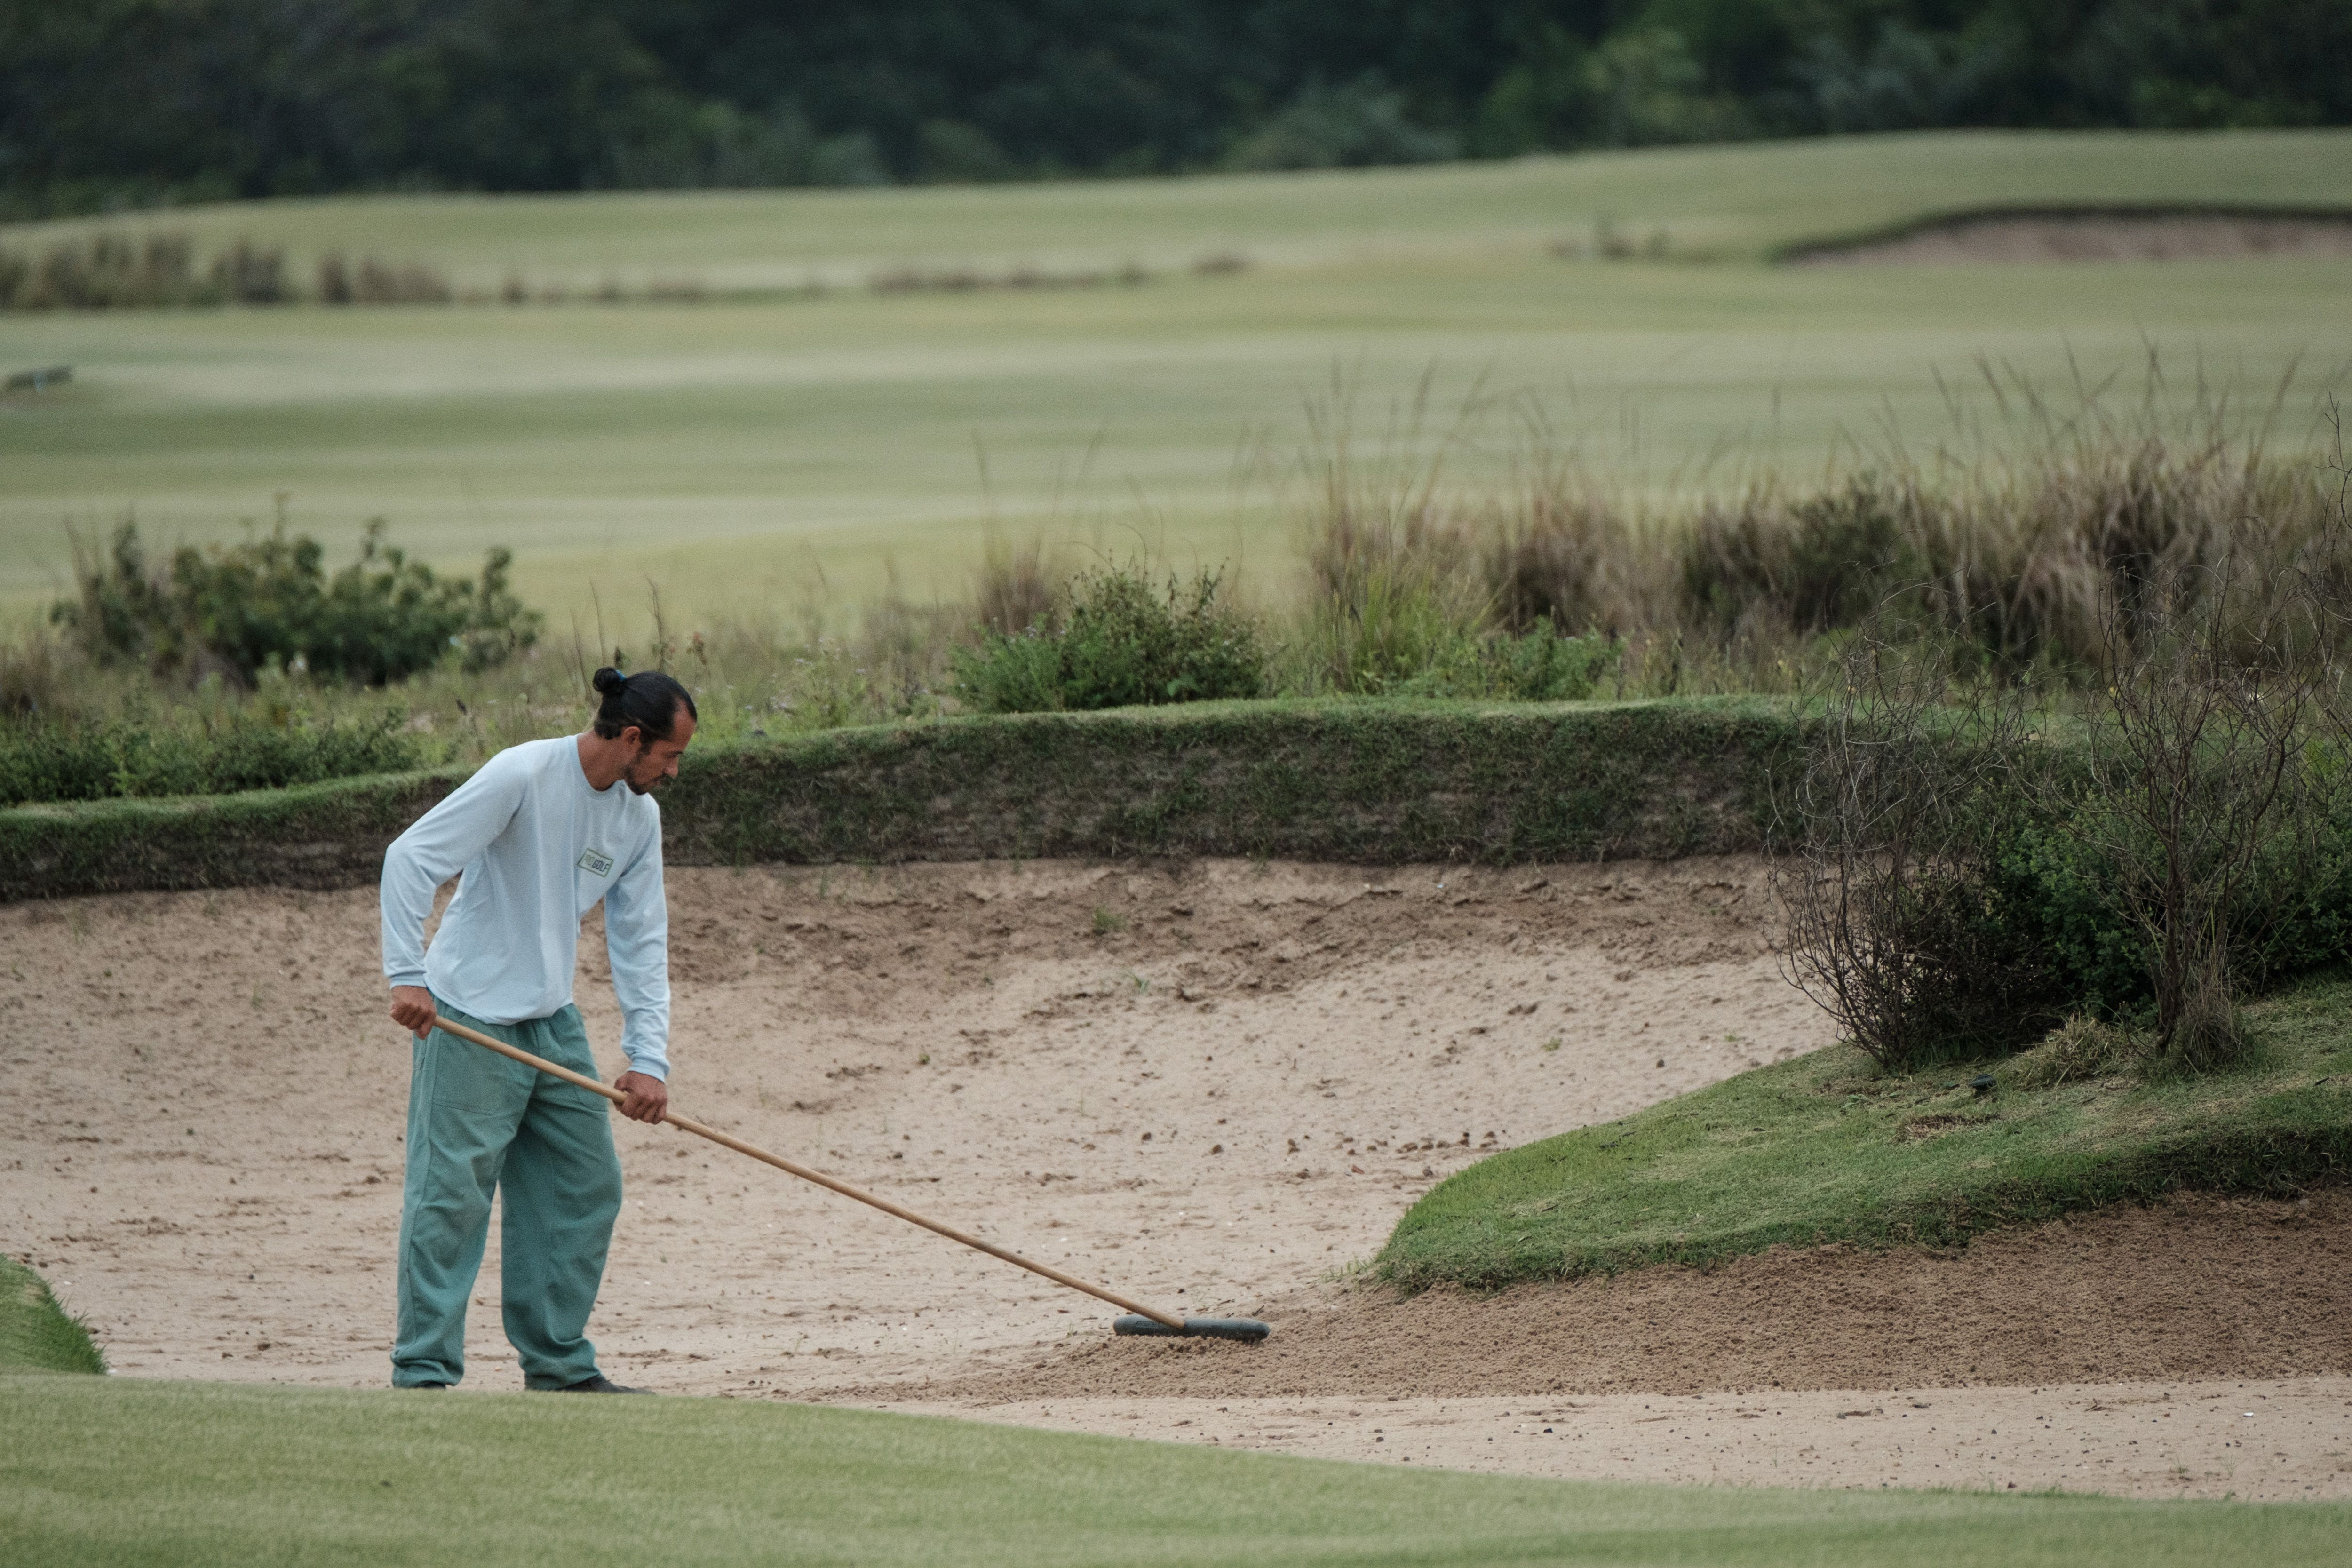 The Olympic Golf Course in Rio has proved difficult to maintain after the 2016 Games concluded.